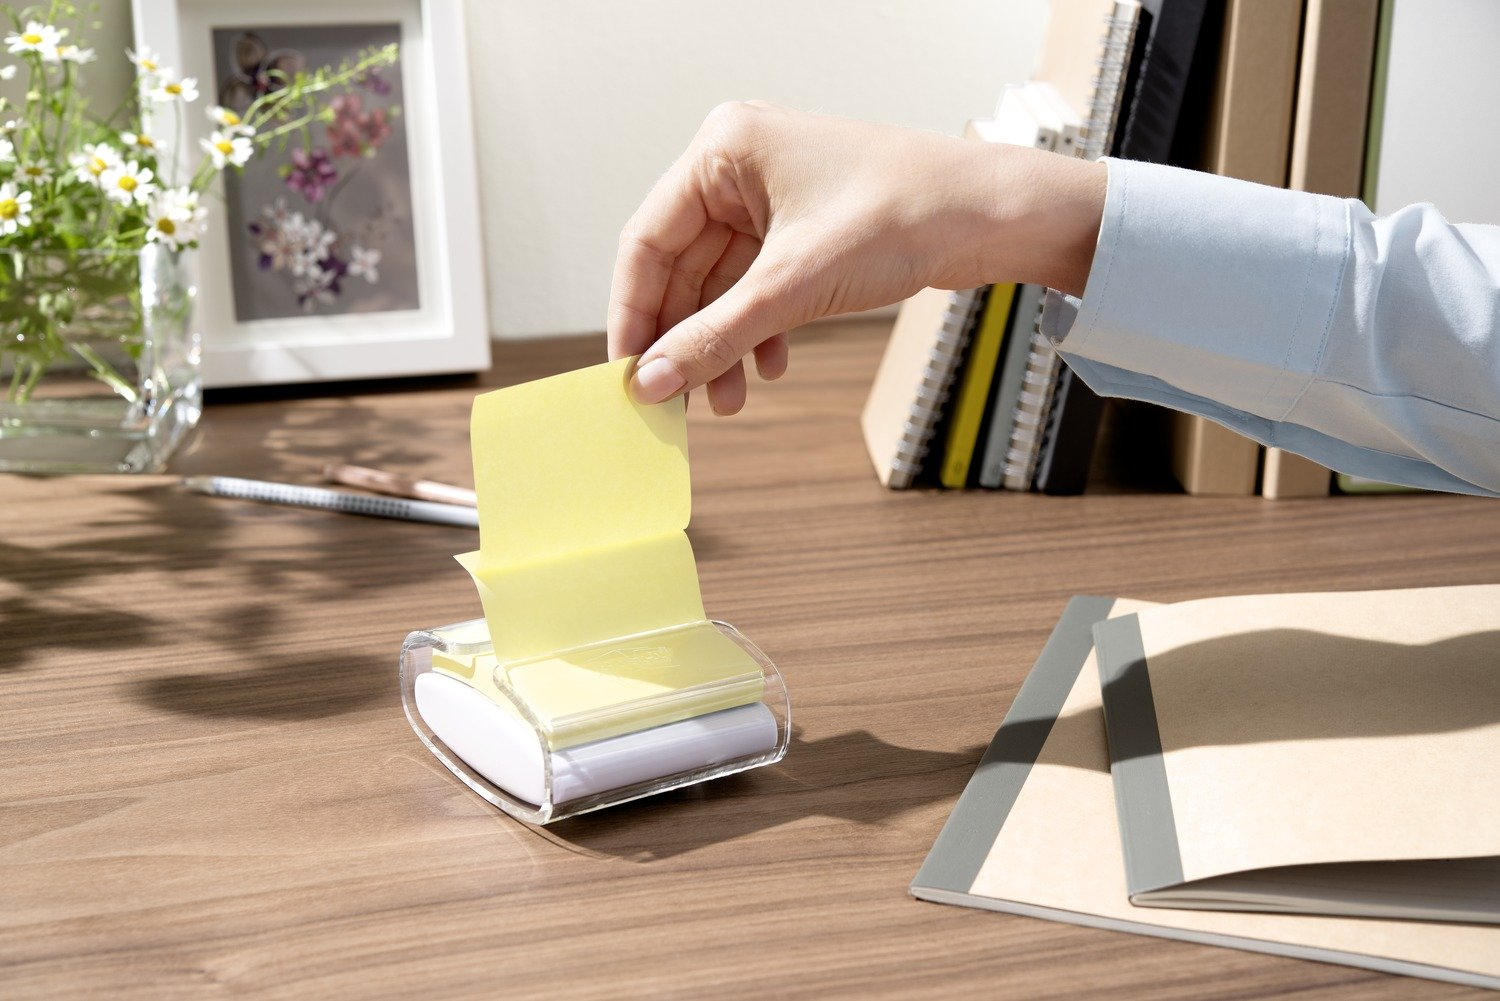 Tower Pack Of 16 Pads 100 Sheets Per Pad 76 mm x 76 mm Canary Yellow Post-it 654-1T Recycled Notes